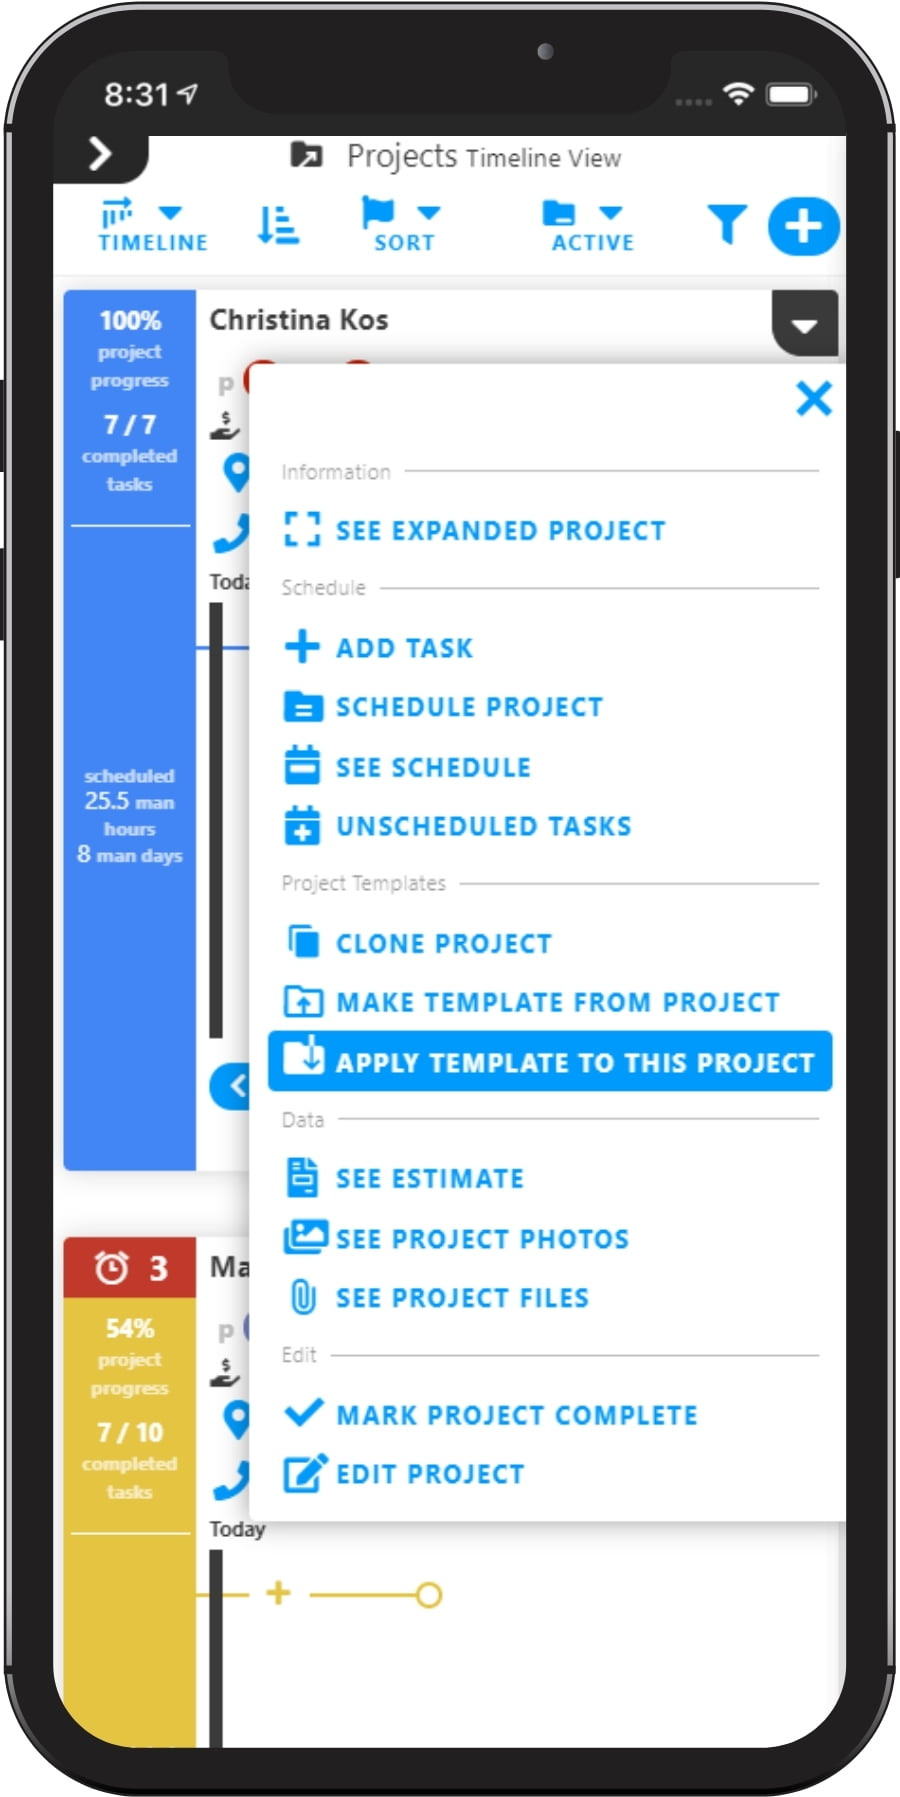 Clone Projects Estimates and Tasks with Projul